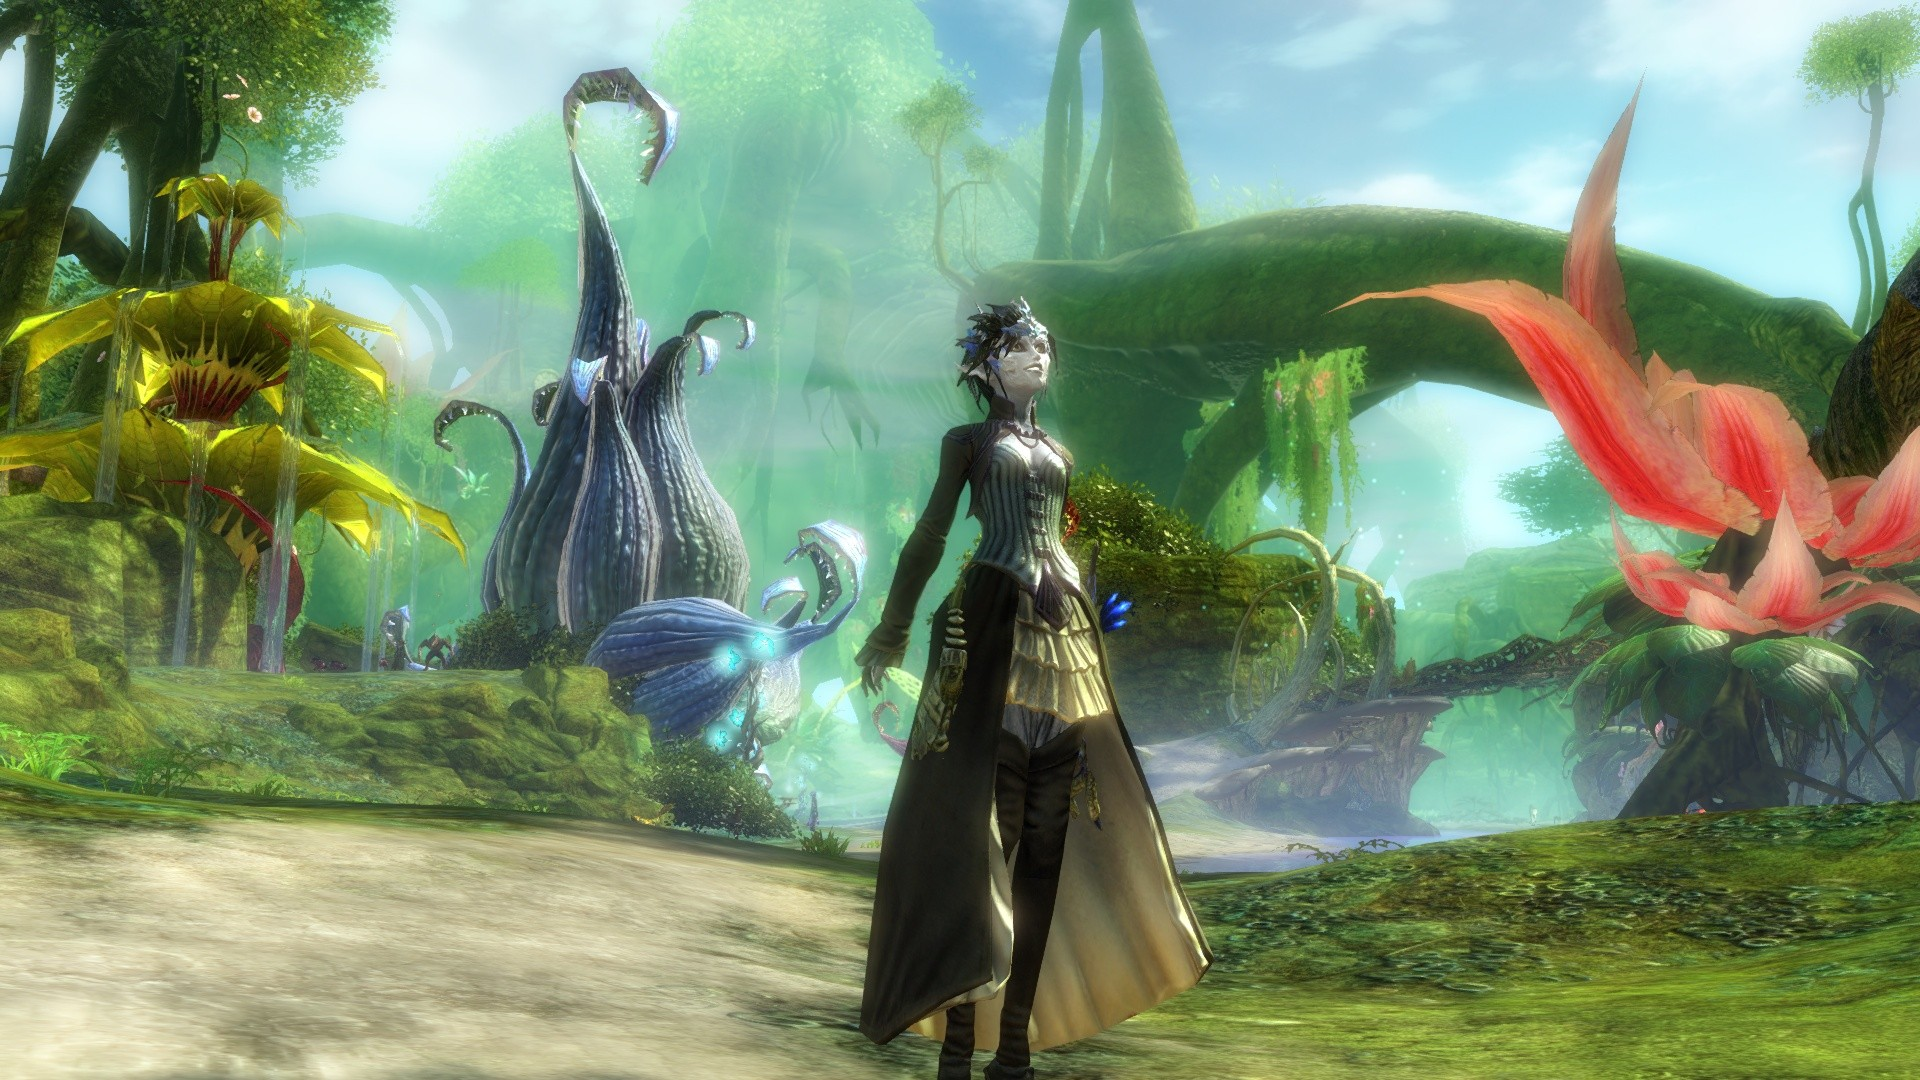 GW2-Sylvari feeling the forest^^